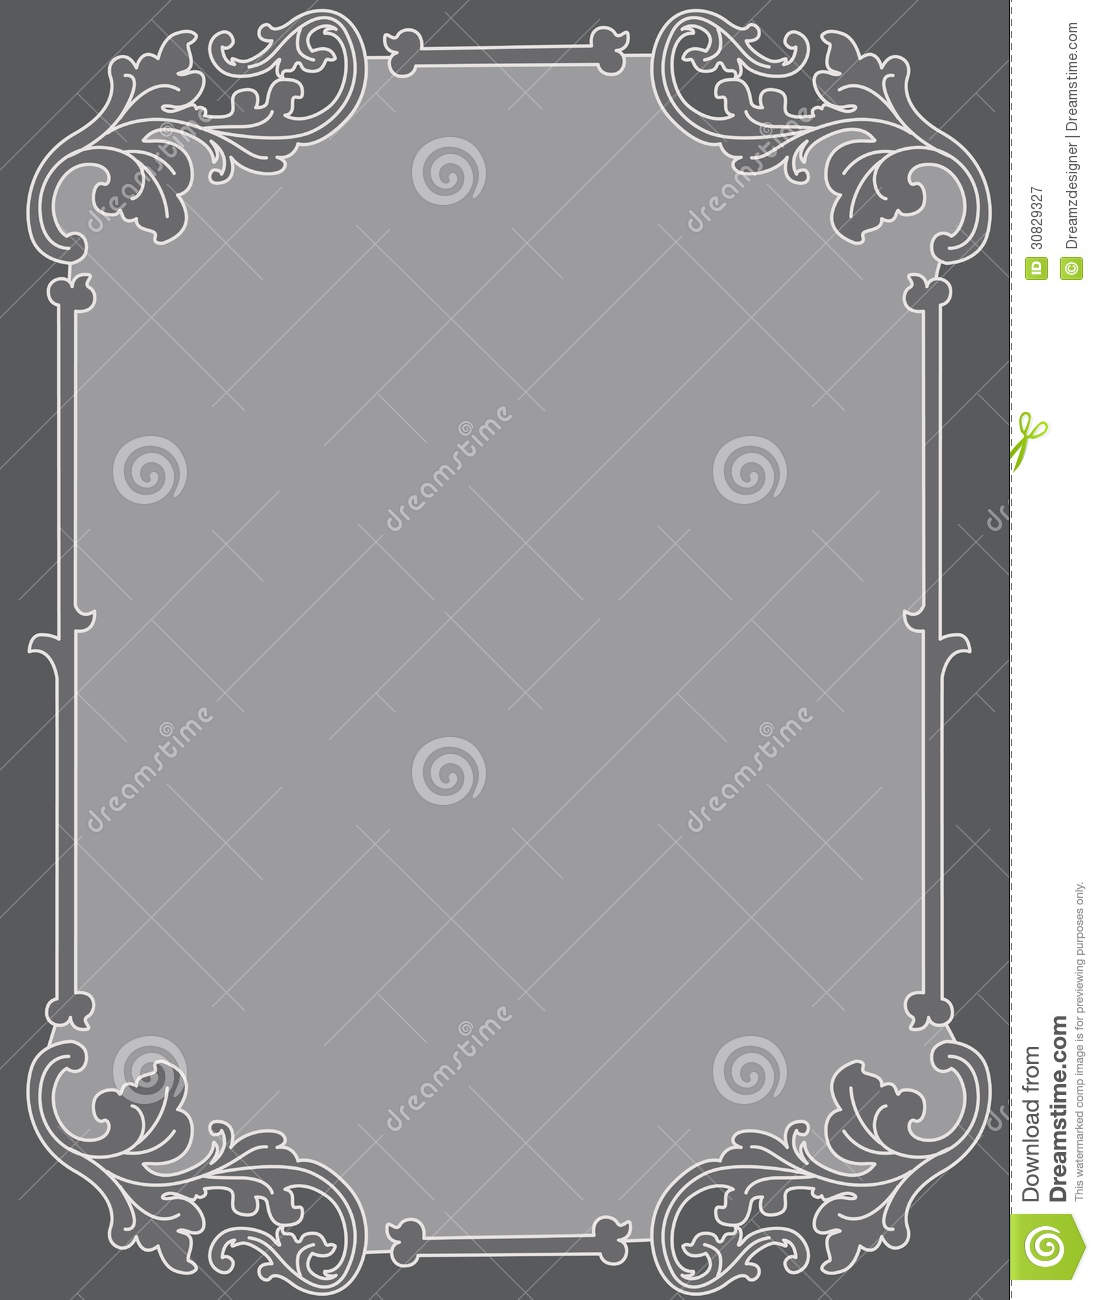 Invitation Background Ornamental Frame Royalty Free Stock Photography - Image: 30829327